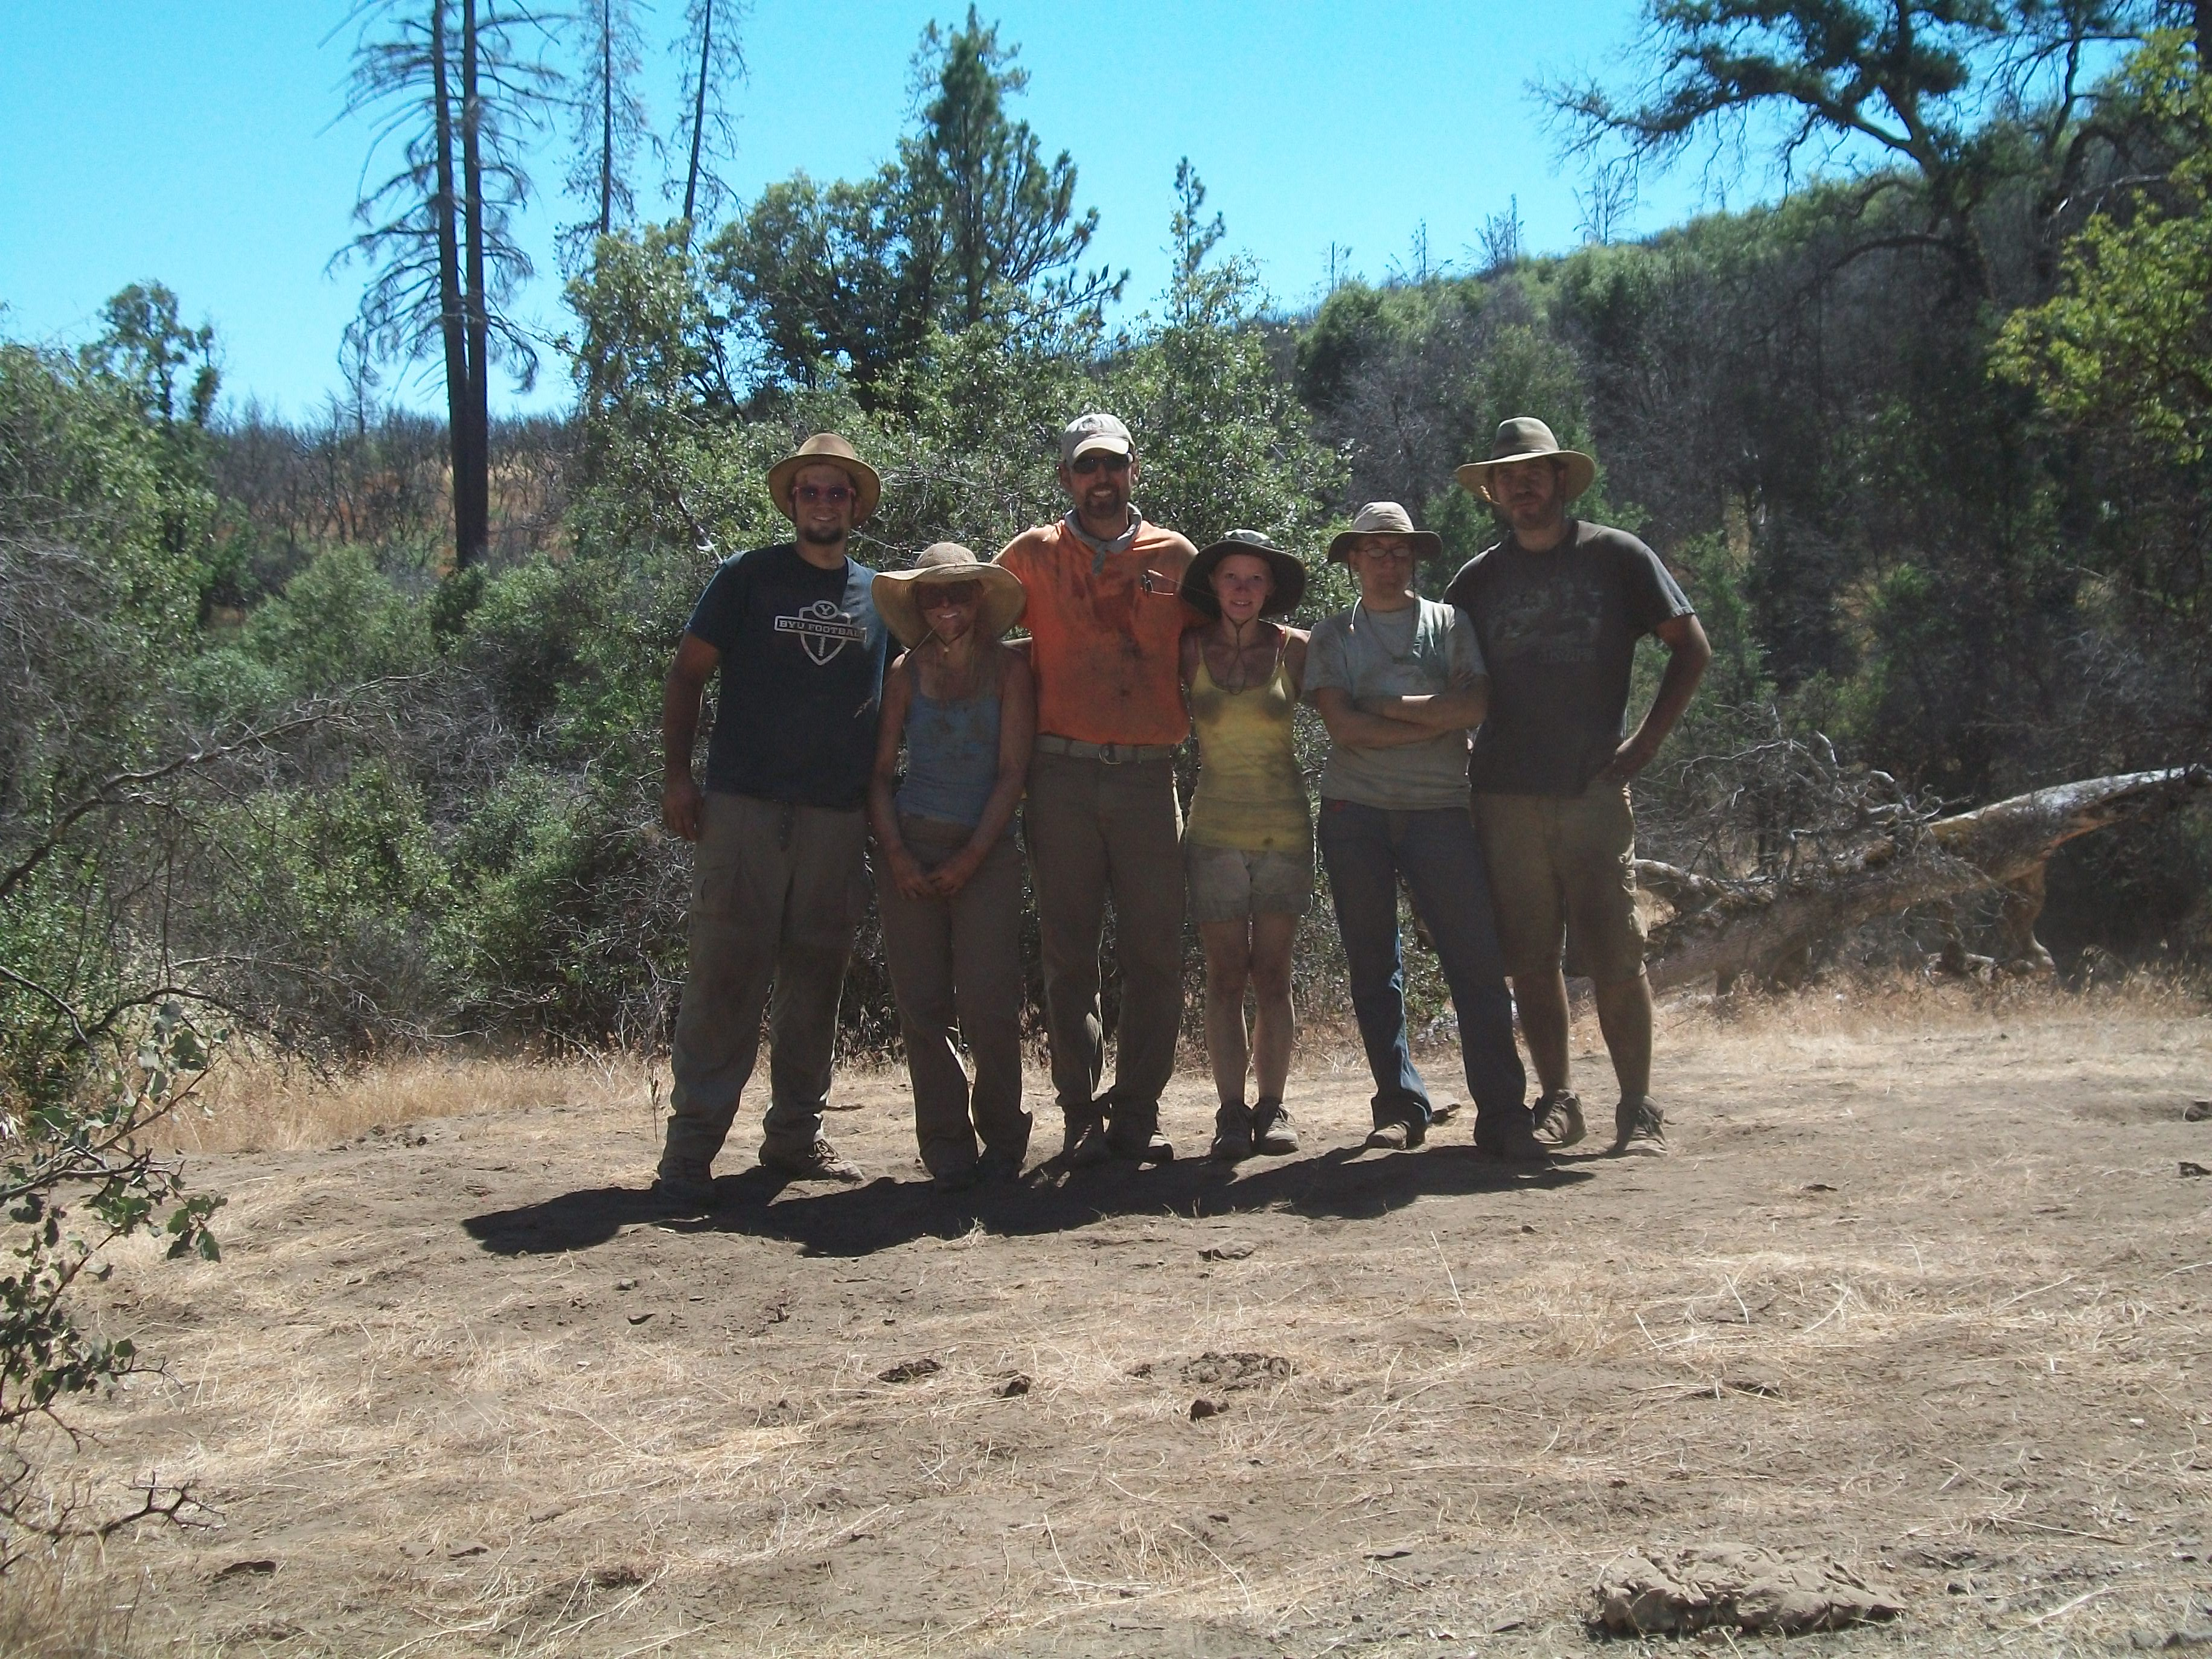 End of Excavation at Billy-Bob